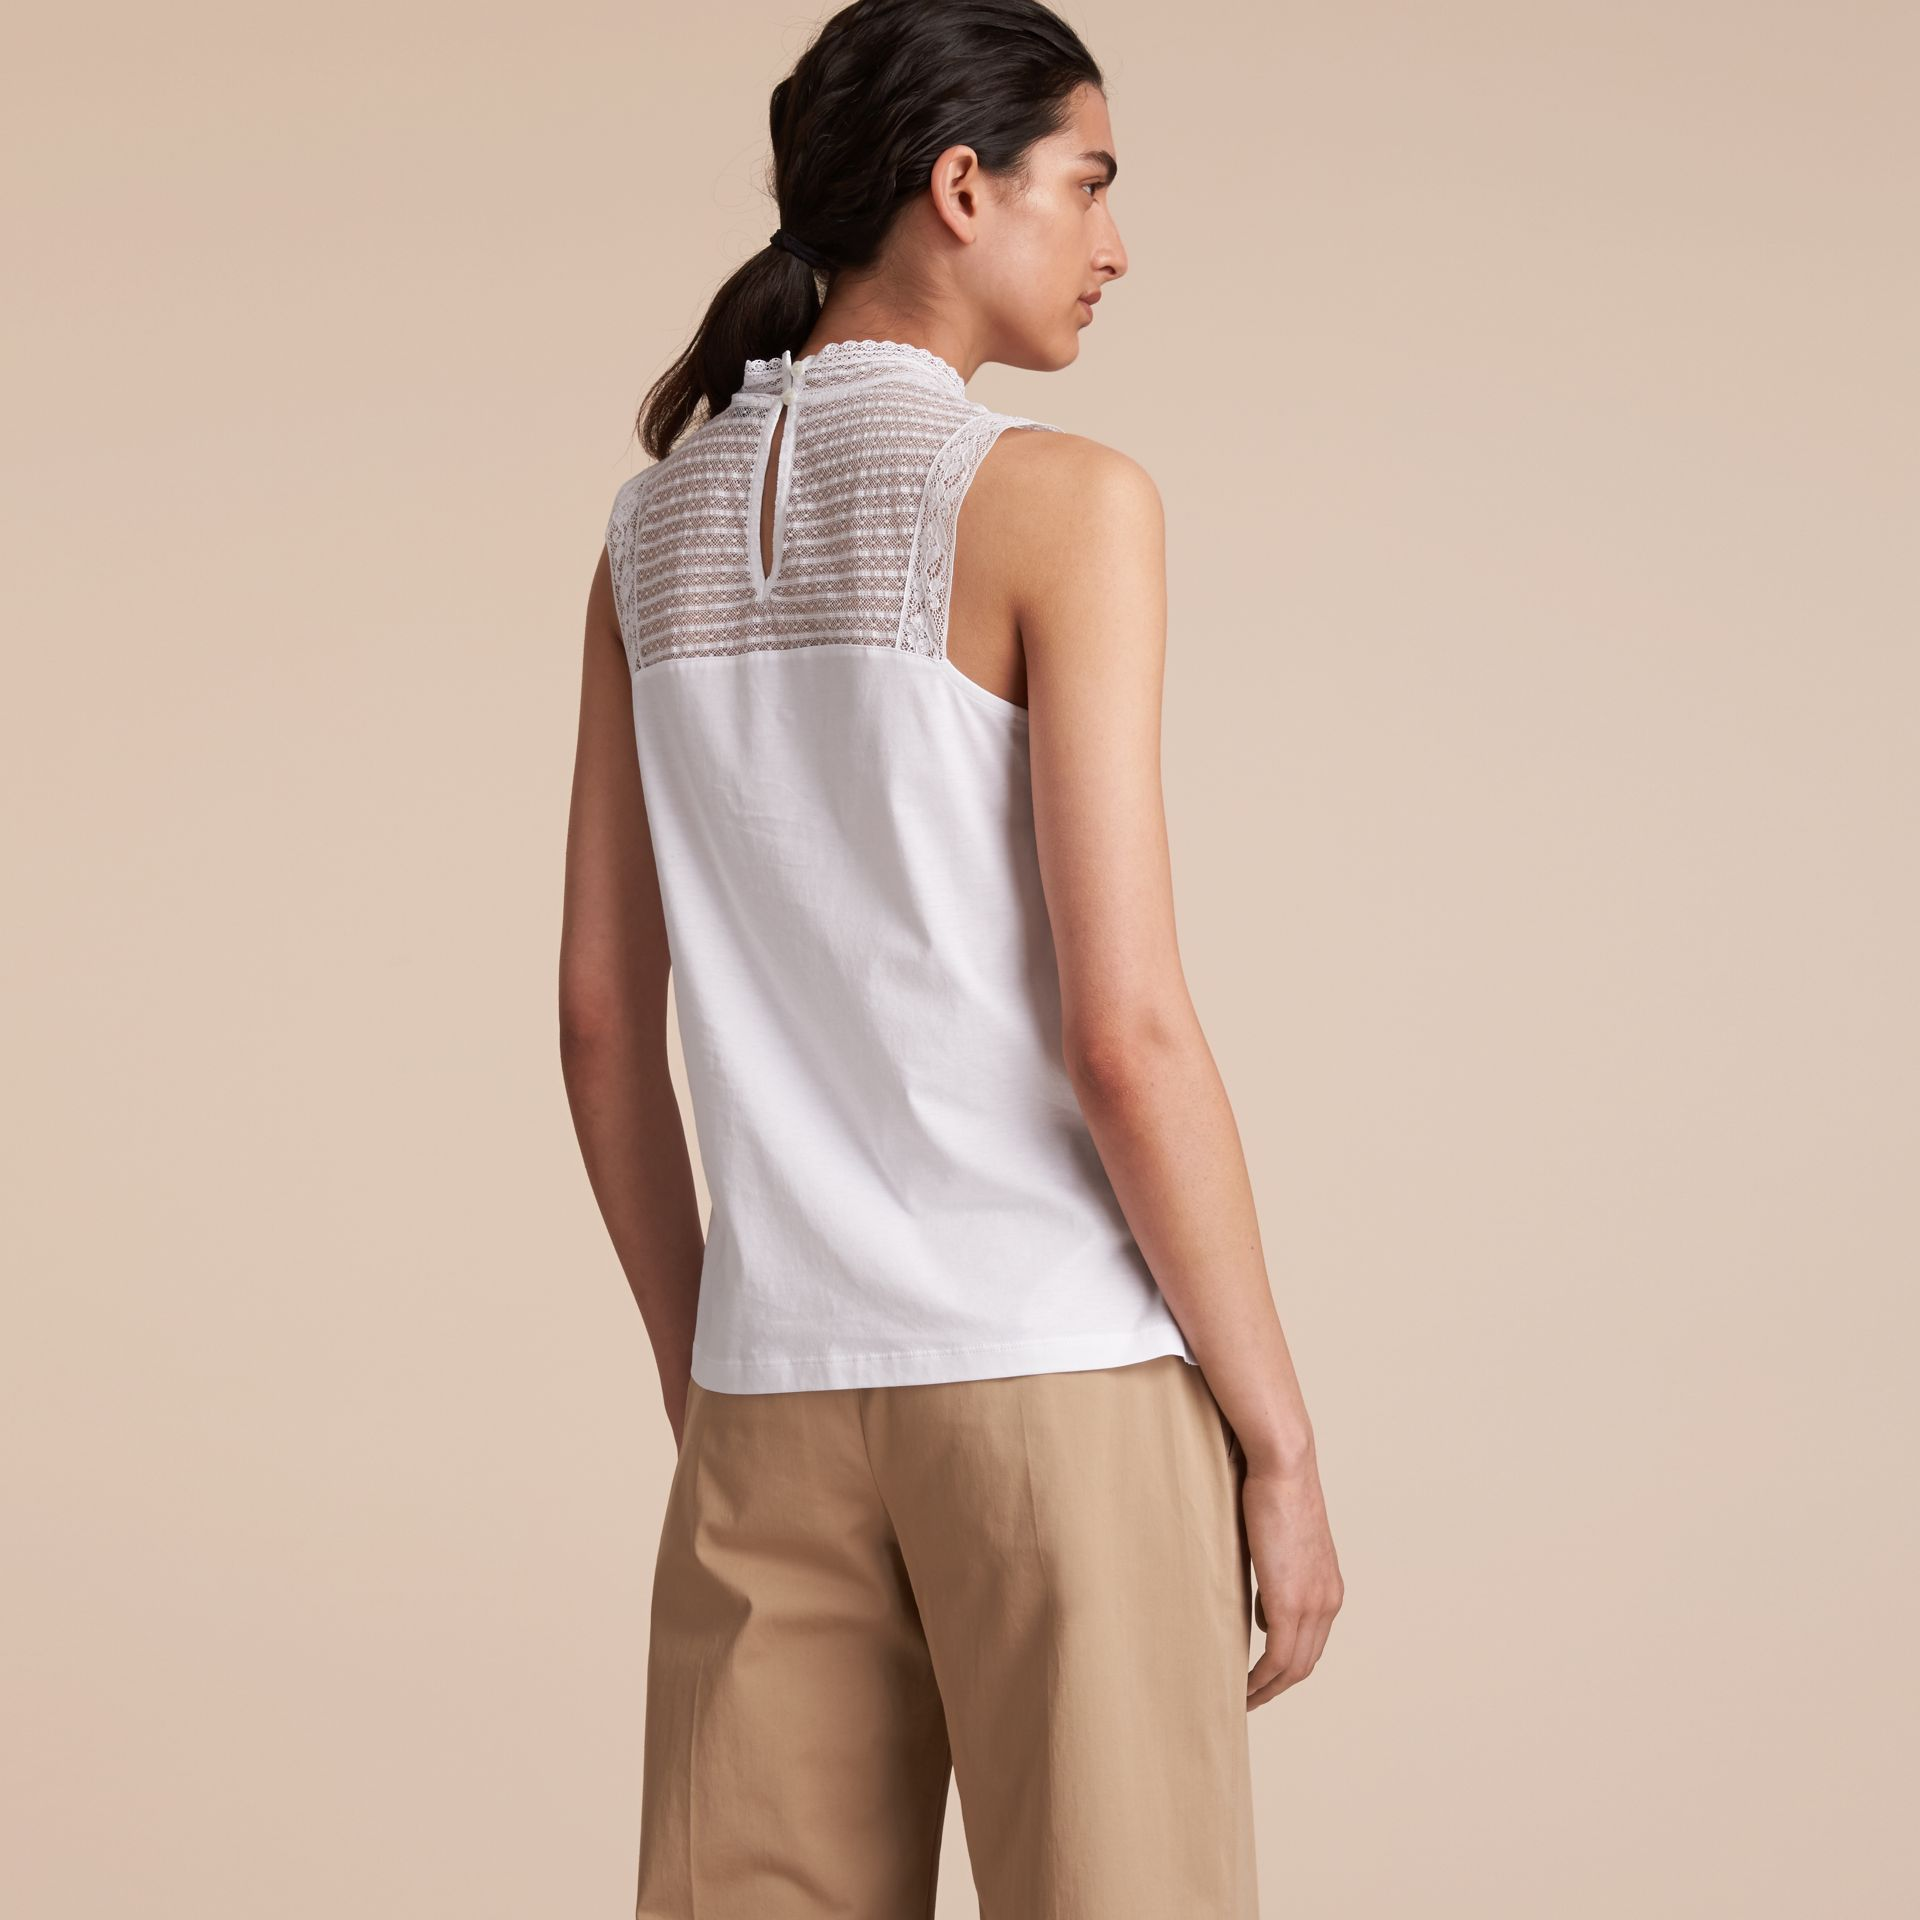 Sleeveless Lace Panel Cotton Top in White - Women | Burberry Canada - gallery image 3